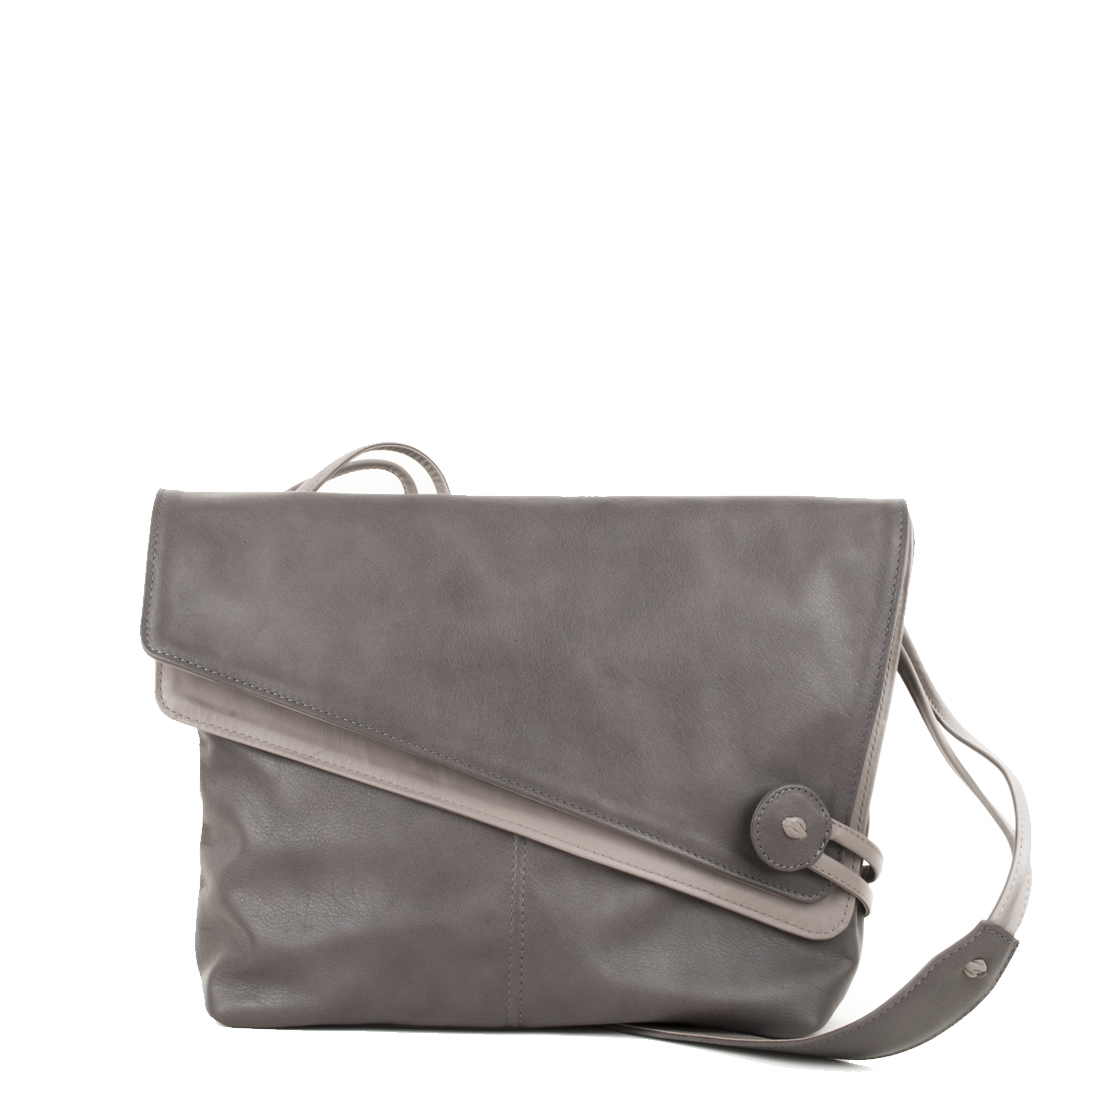 Lindsay Grigio with taupe